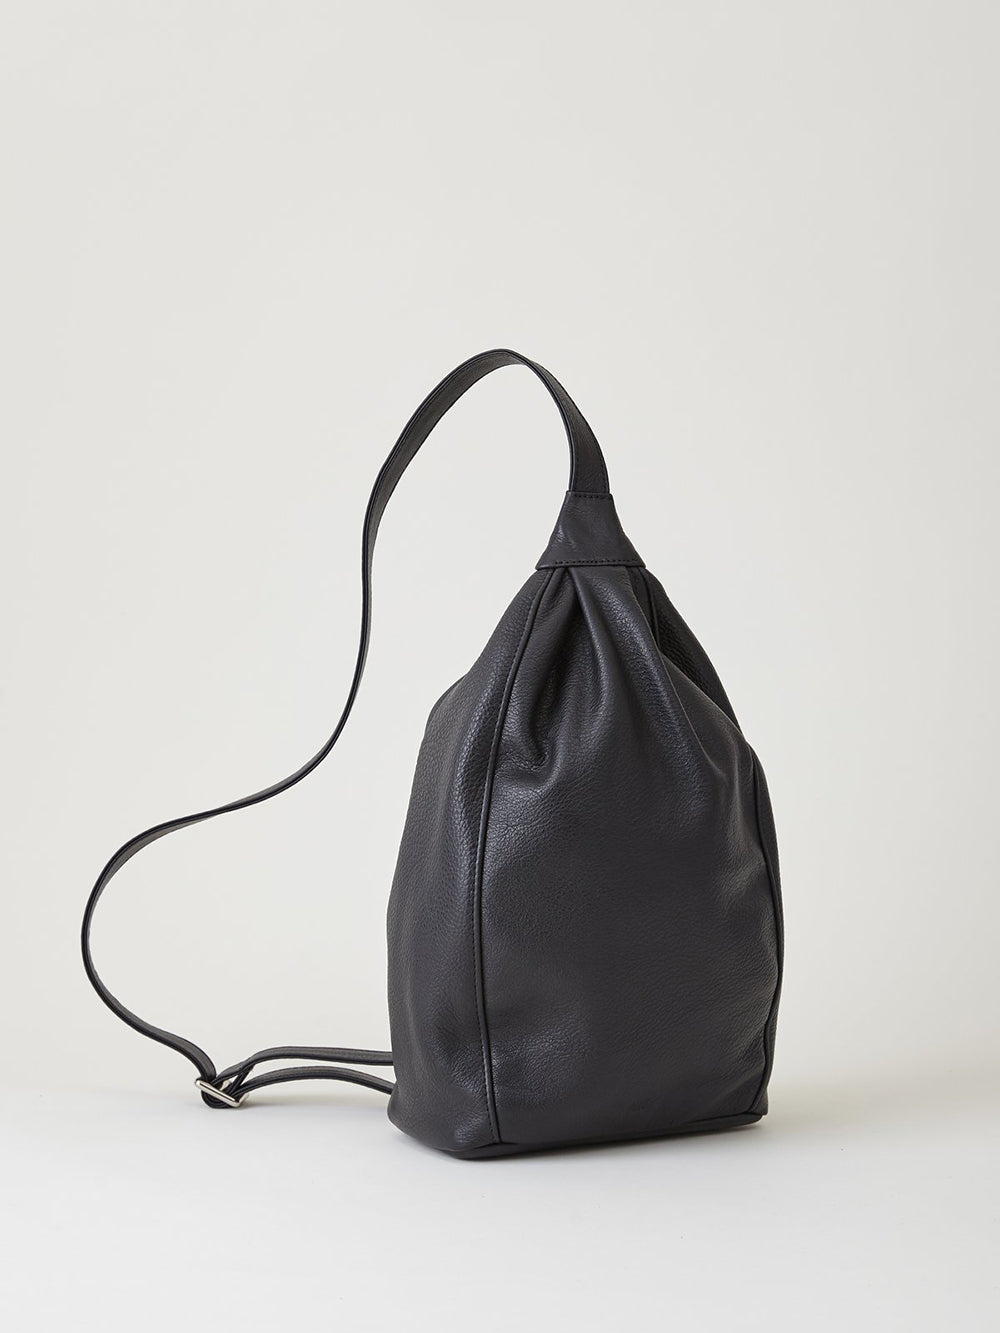 are studio fehn bag in black